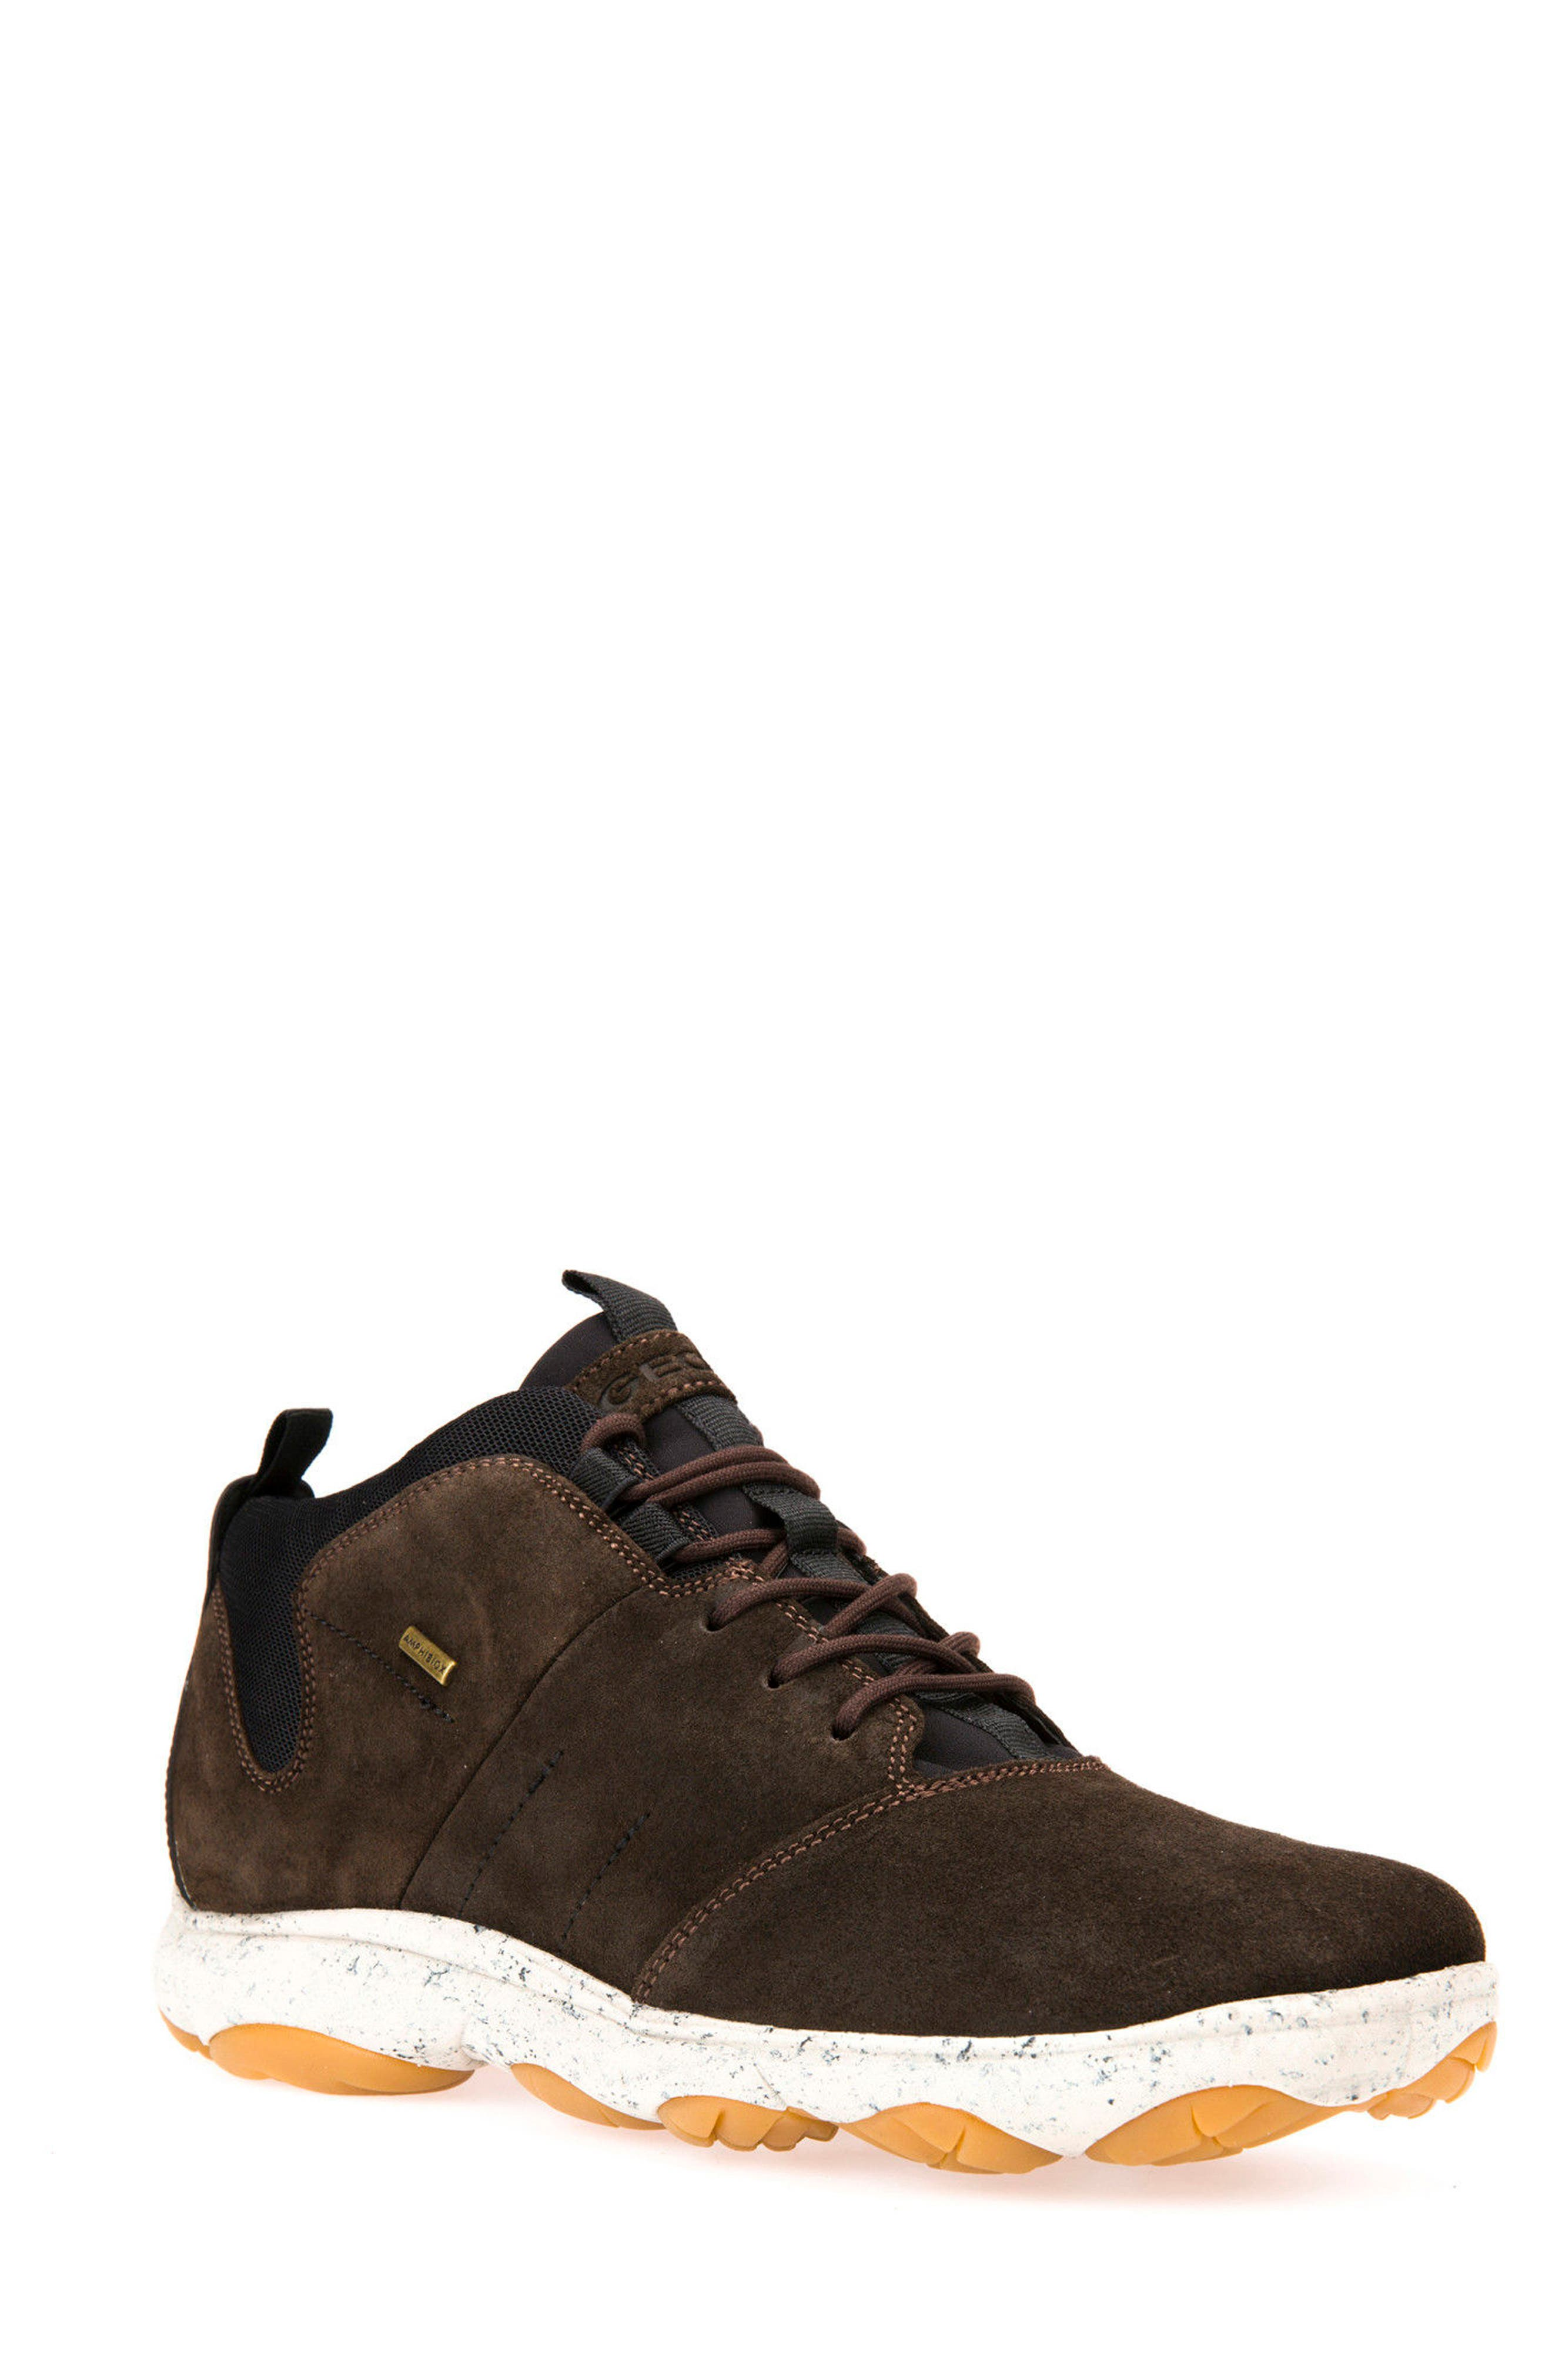 Nebula ABX Waterproof Boot,                         Main,                         color, Chestnut